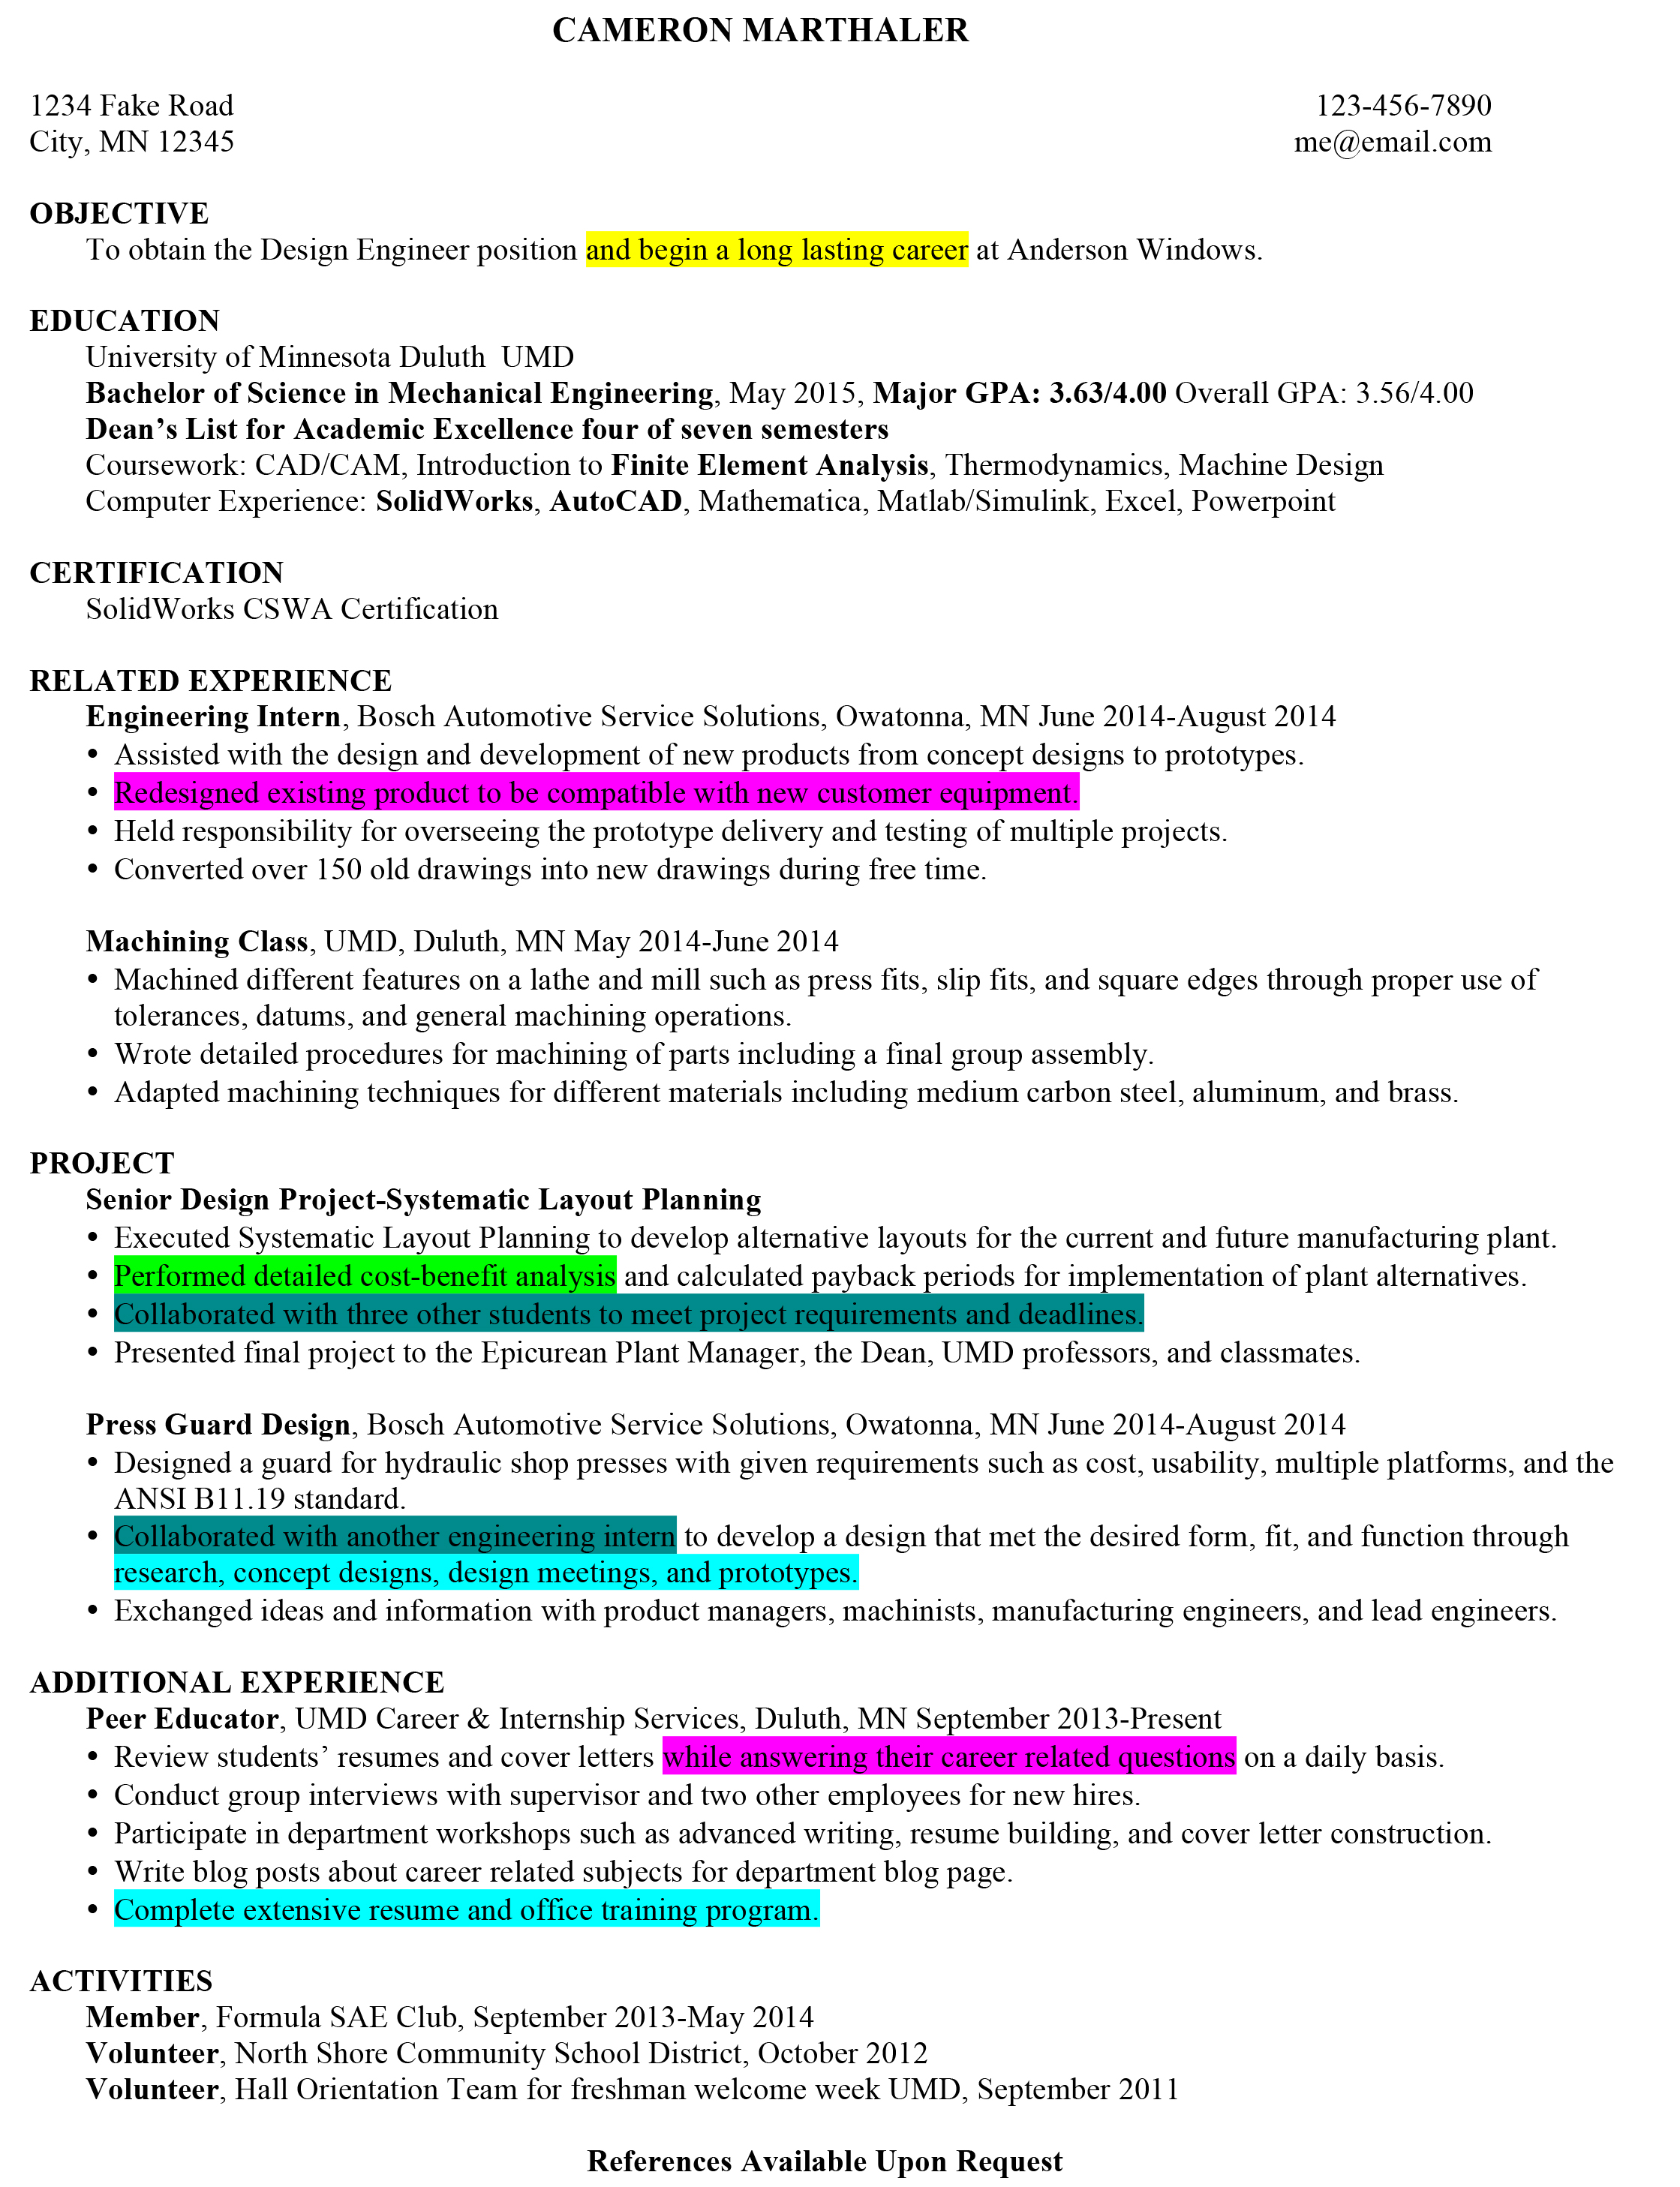 Resume strengths examples